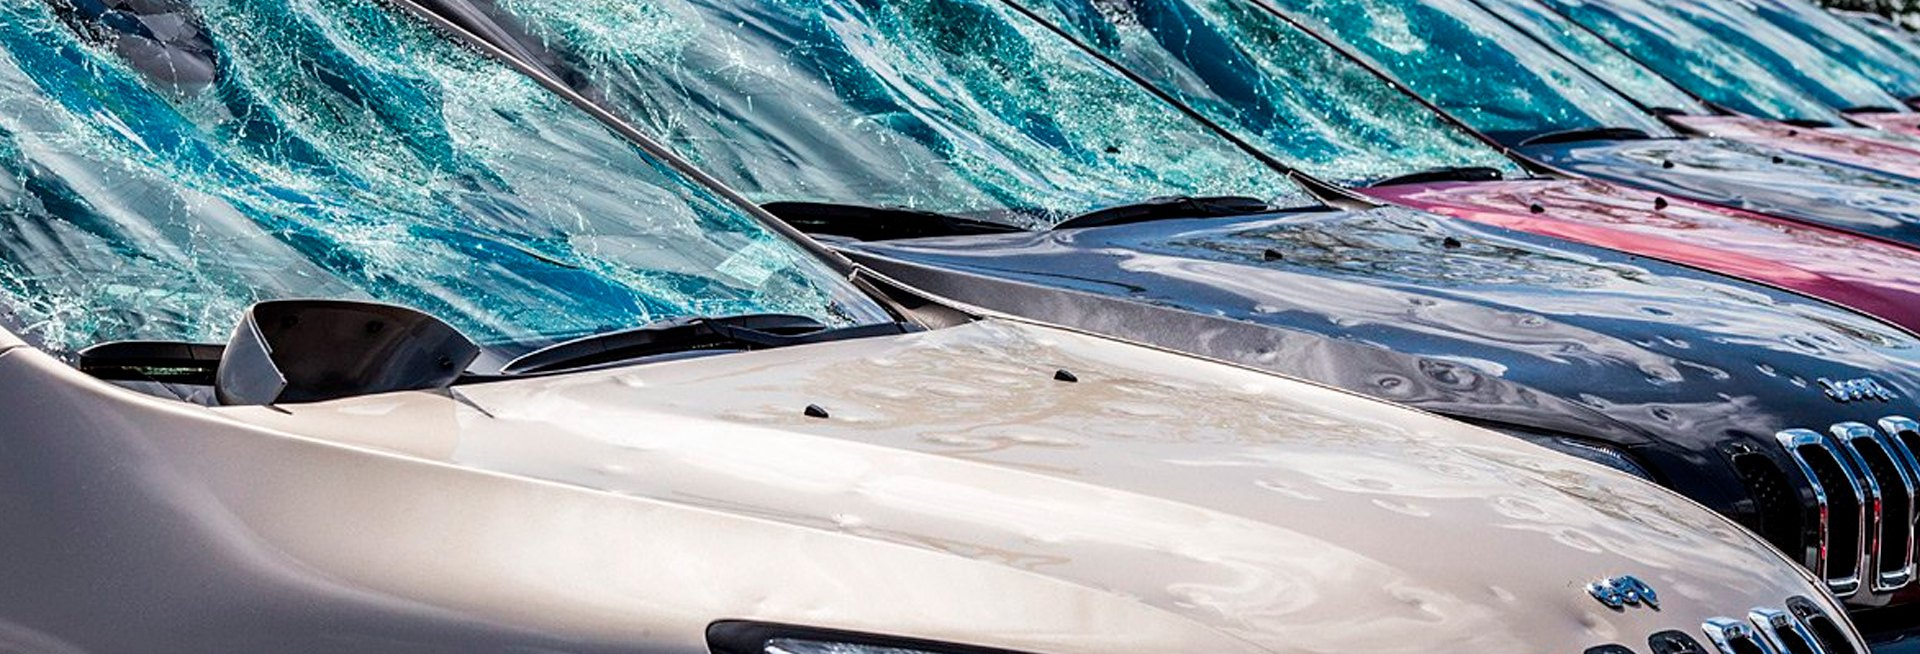 All The Ways Your DIY Hail Dent Removal Could Go Horribly Wrong